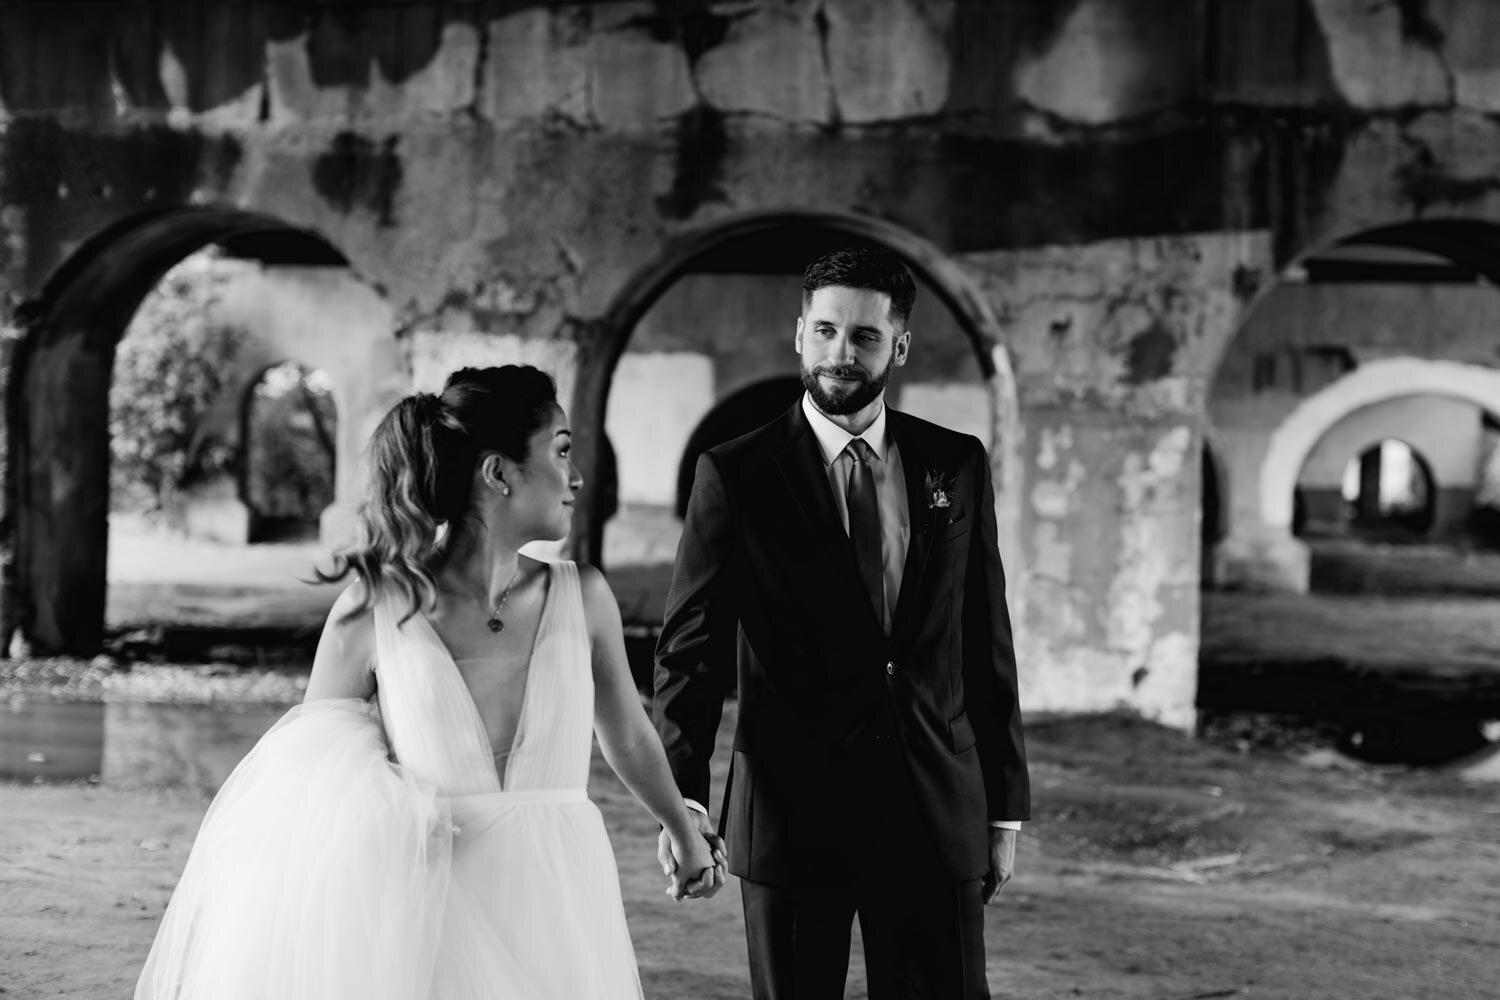 Mt Washington Mill Dye House industrial Baltimore wedding by Barbara O Photography-16.jpg